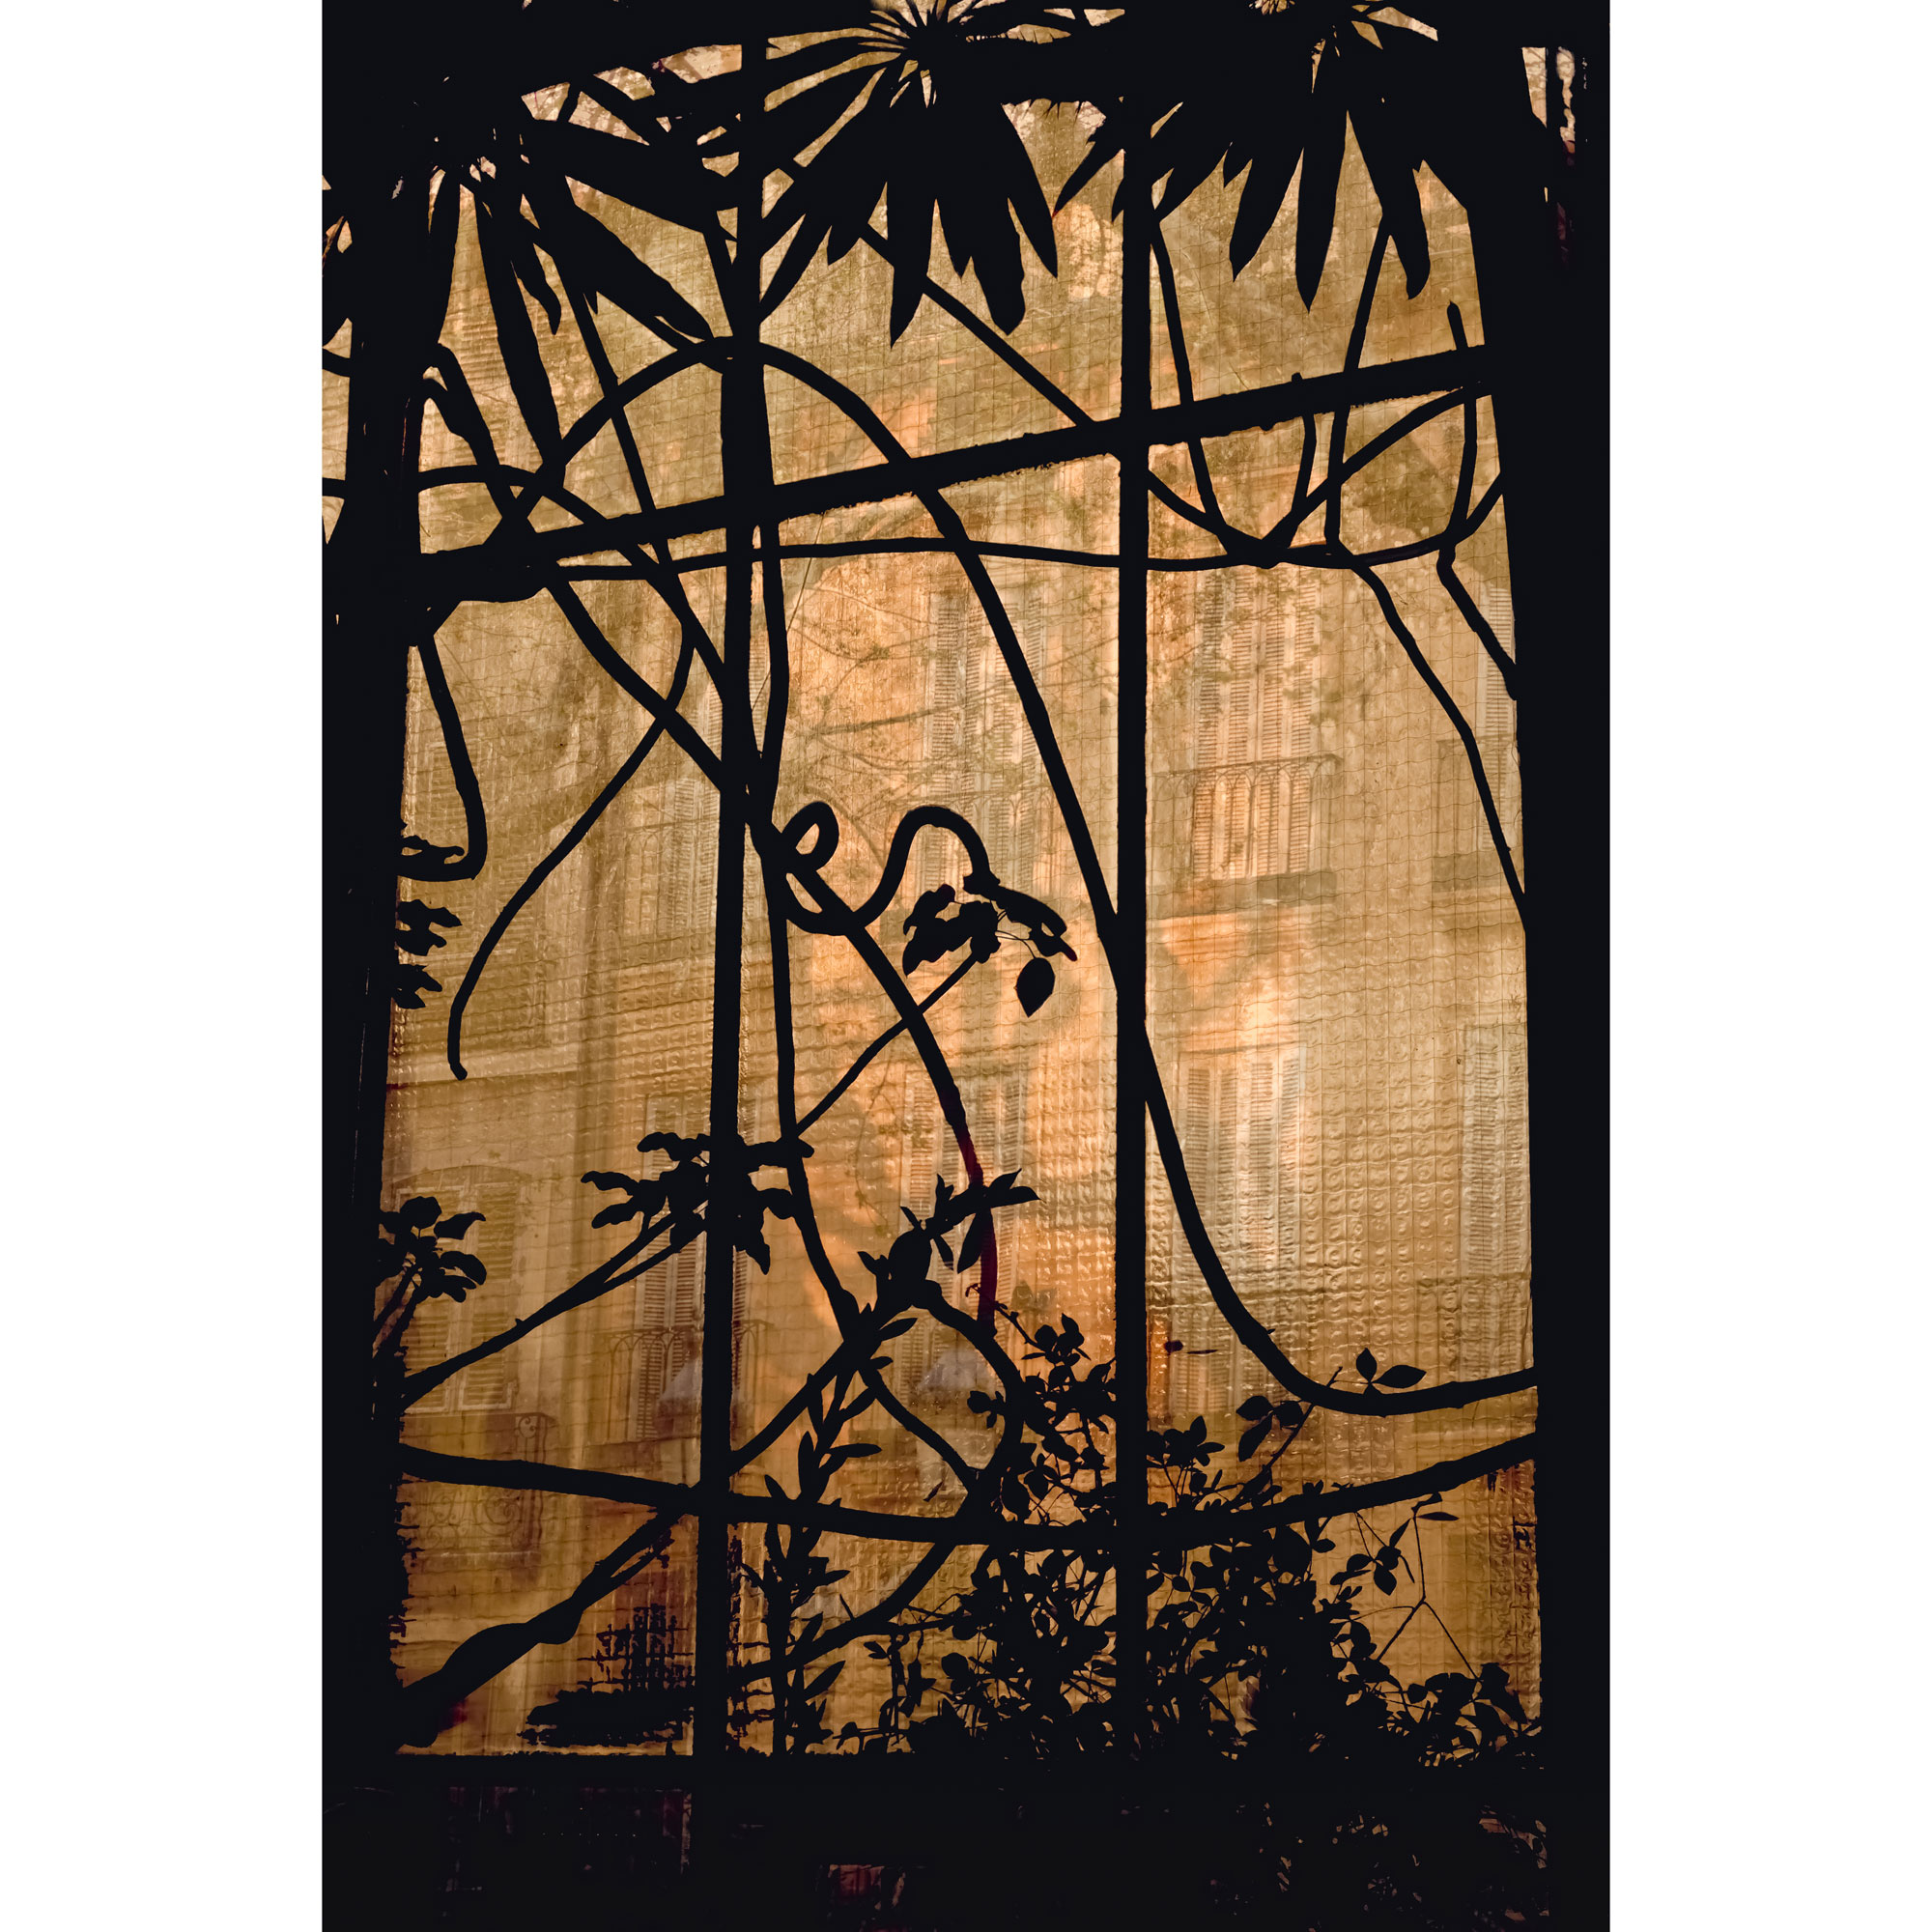 Silhouette Conservatory tempered glass print